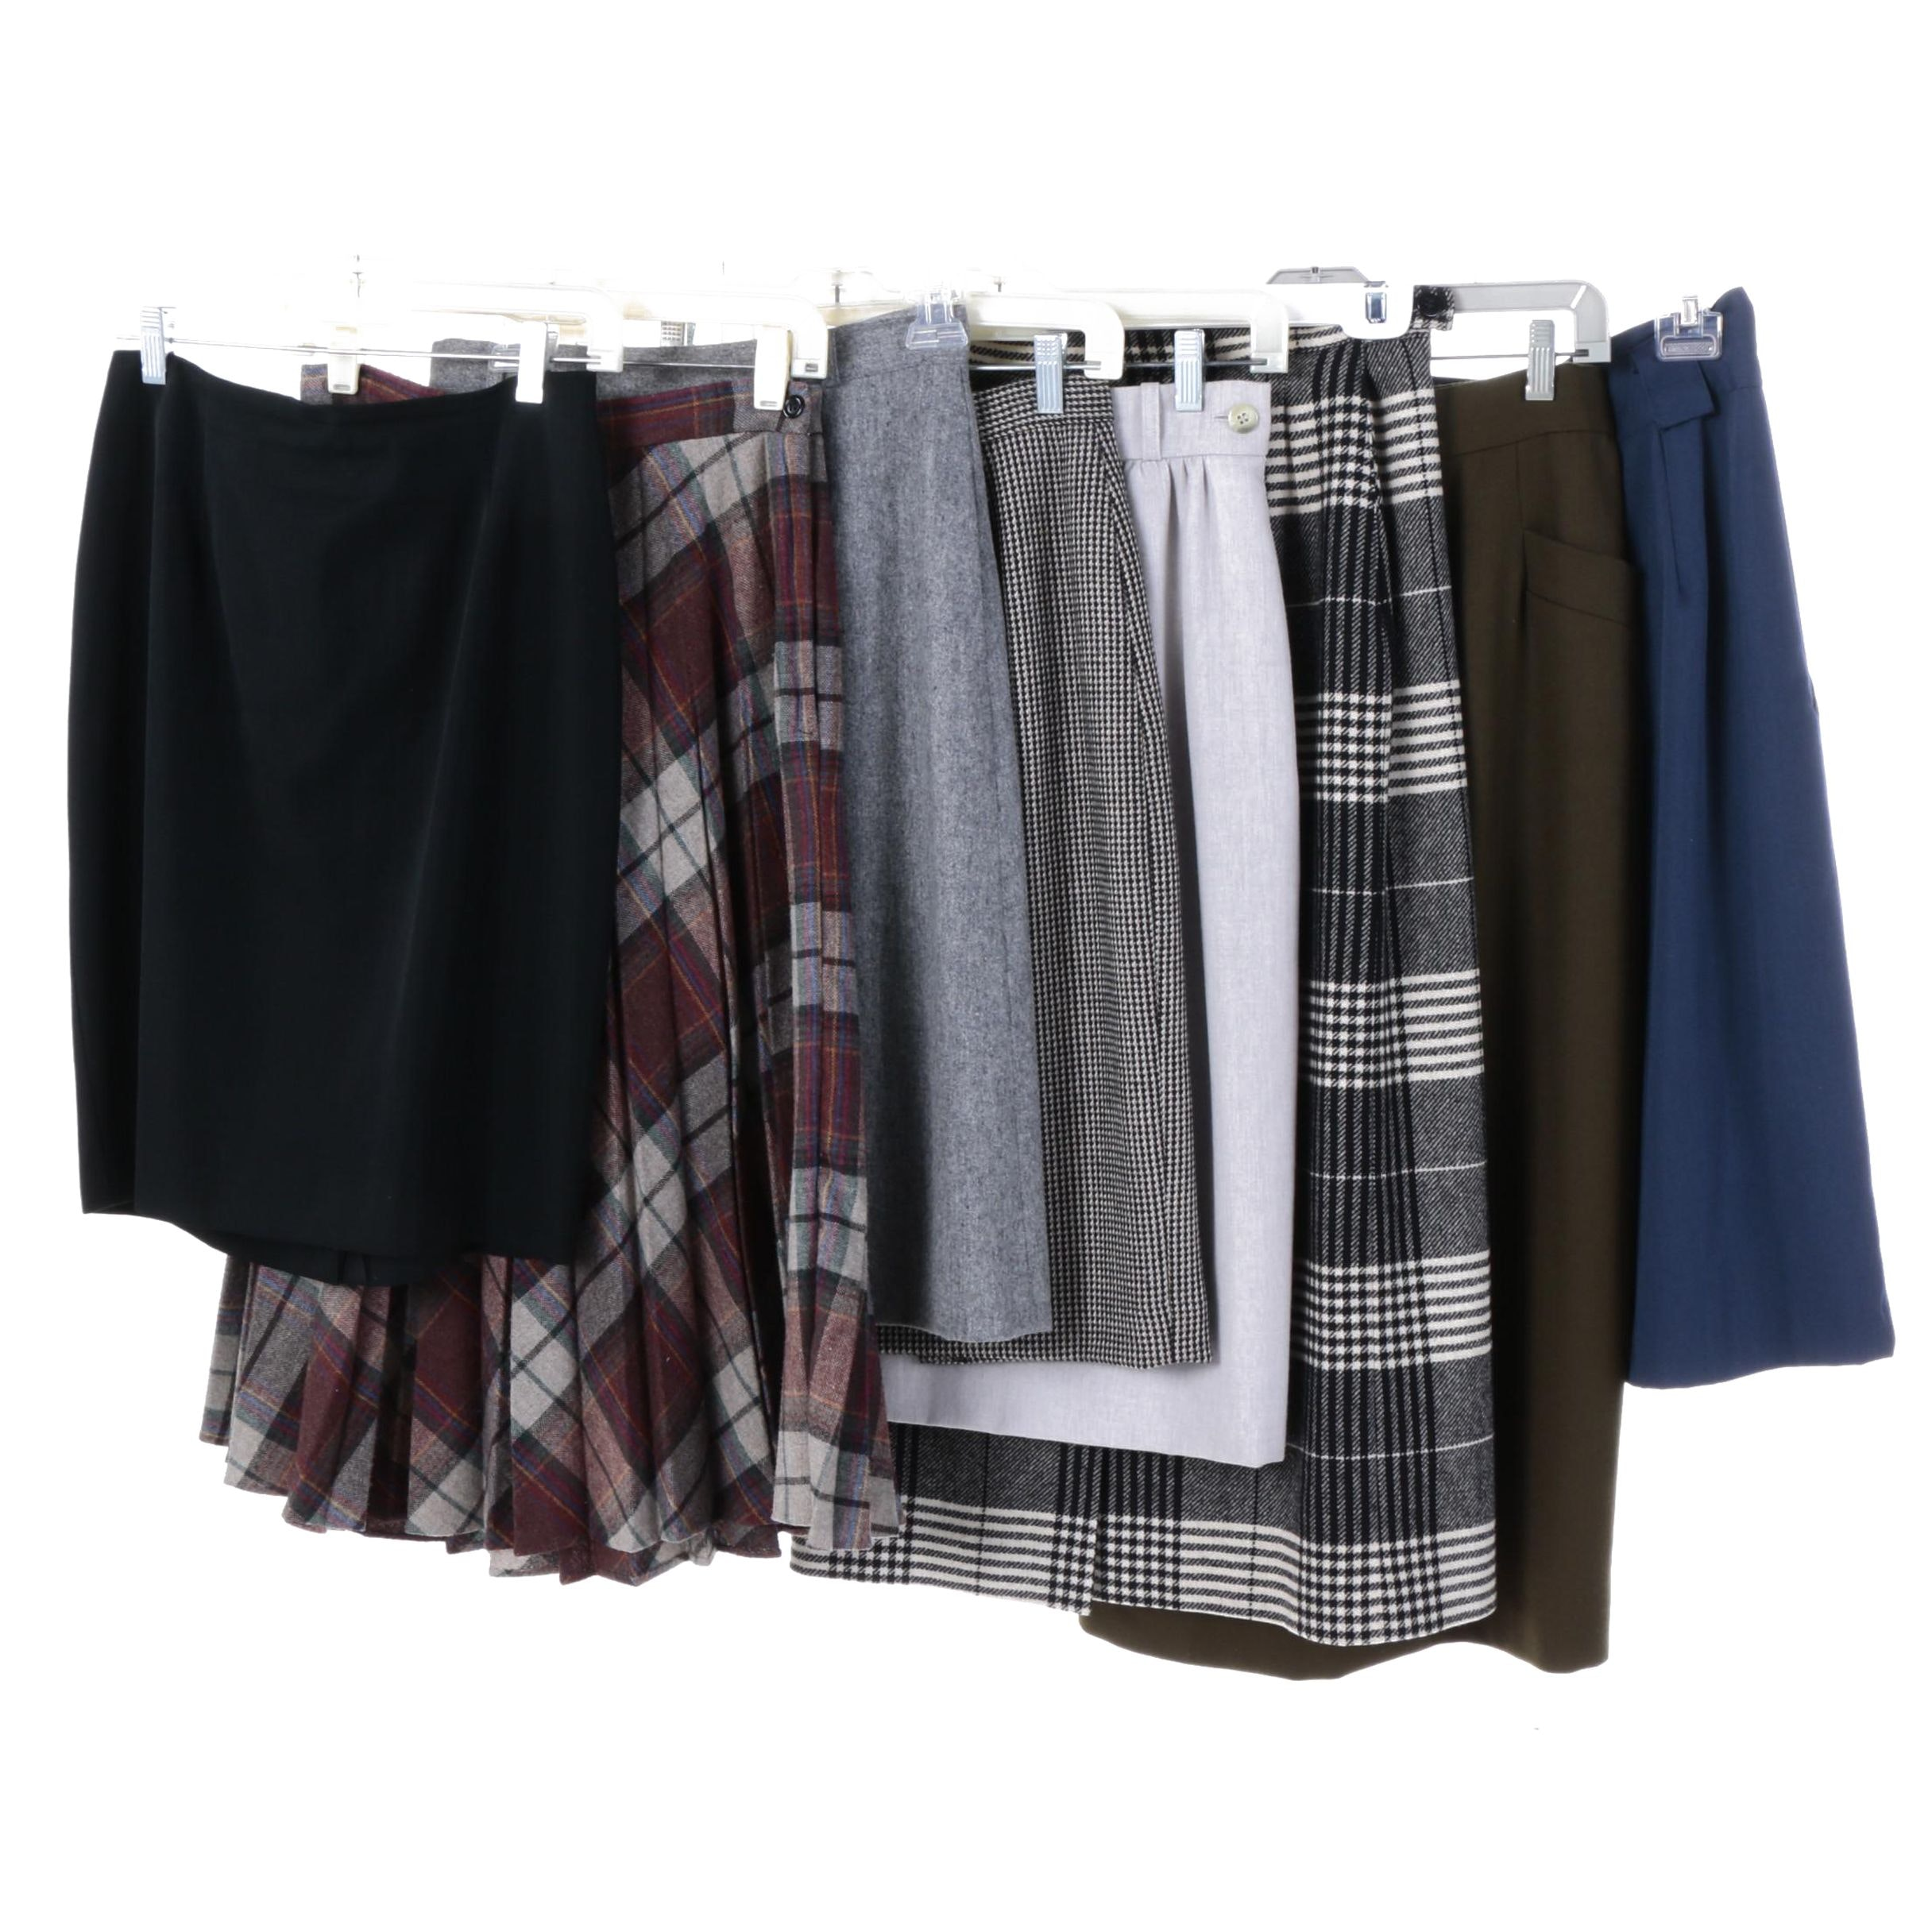 Women's Vintage Skirts Including Evan-Picone and Jaeger